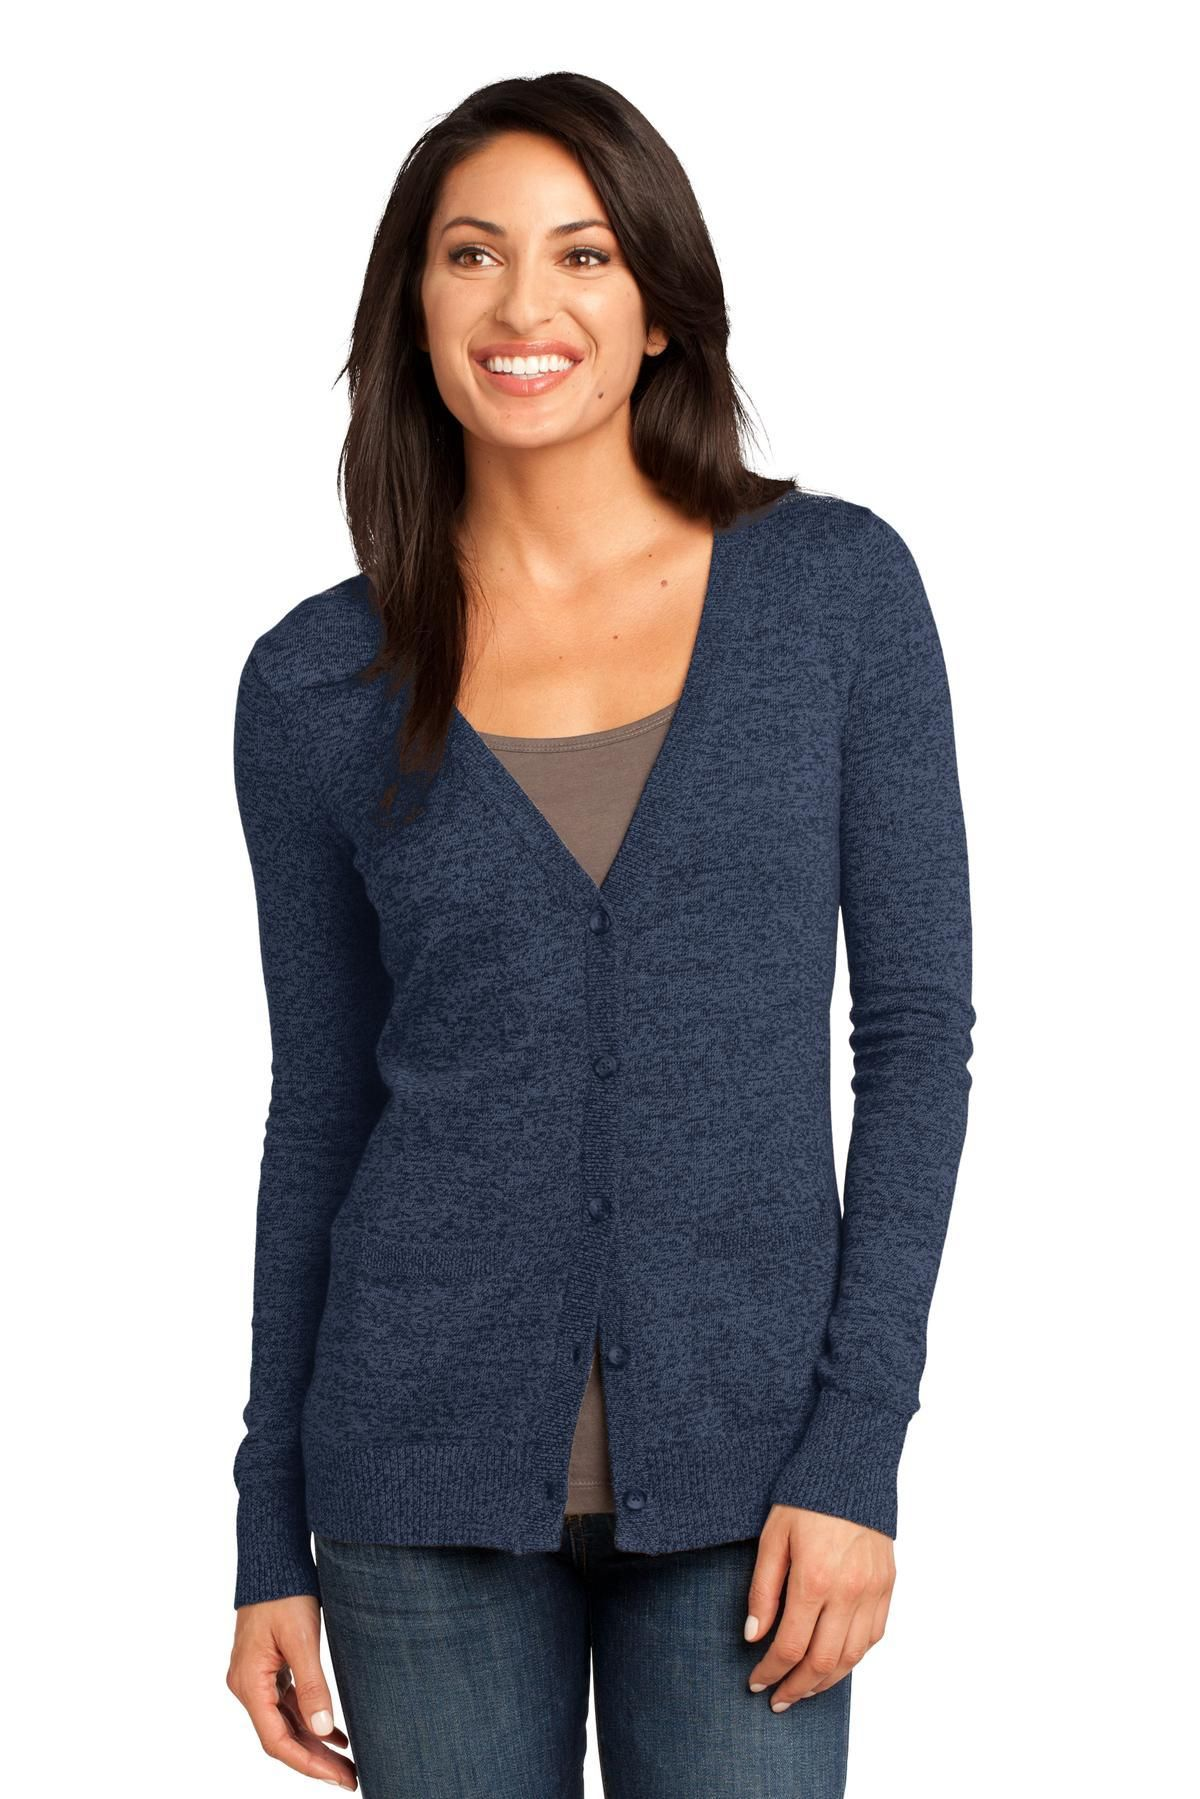 10e0b769085116 District Made - Ladies Cardigan Sweater DM415 Navy